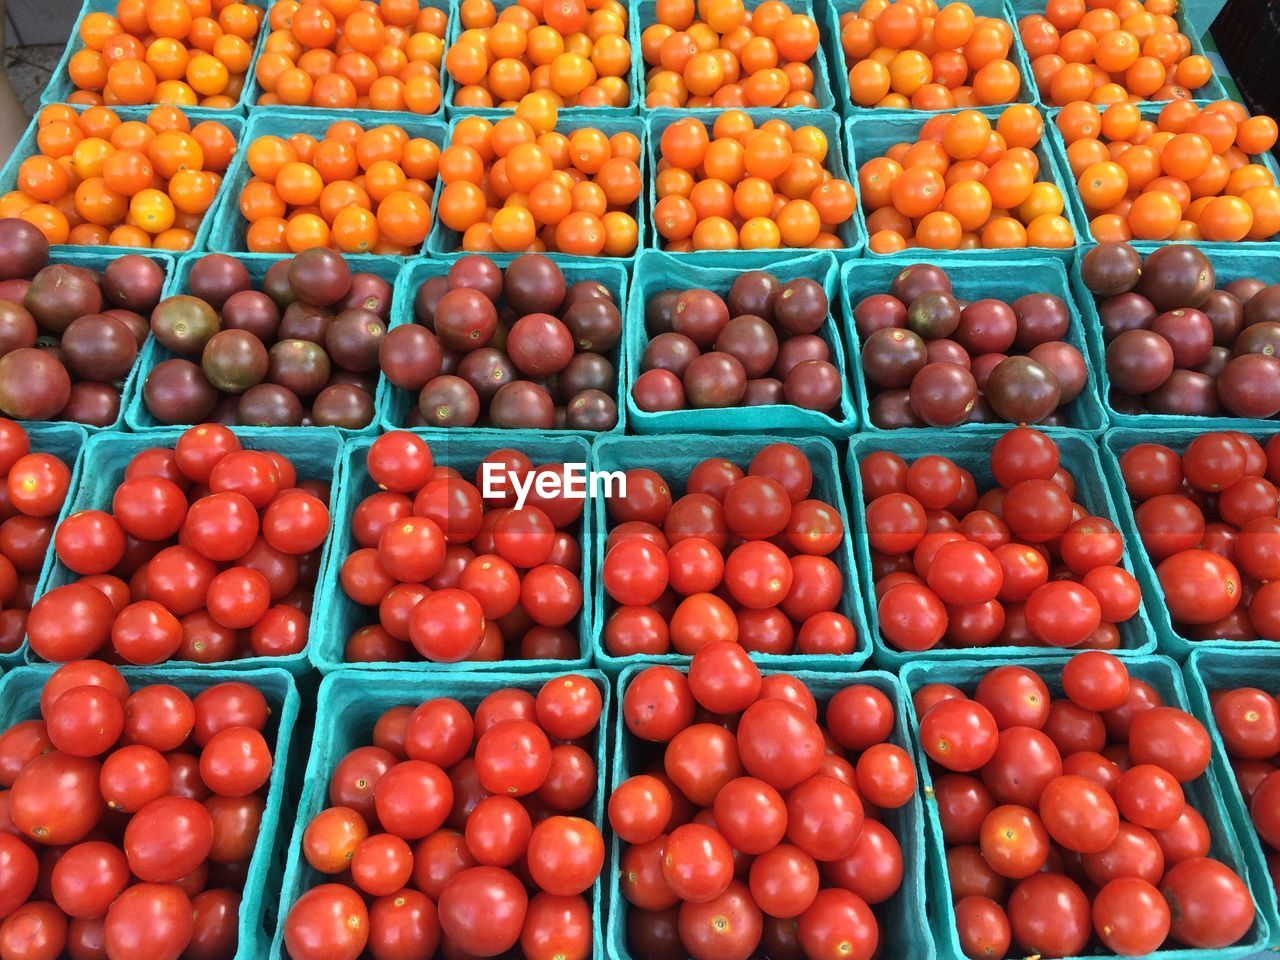 food, healthy eating, food and drink, large group of objects, wellbeing, abundance, fruit, vegetable, choice, freshness, market, red, retail, tomato, no people, farmer's market, container, market stall, variation, full frame, sale, order, street market, ripe, consumerism